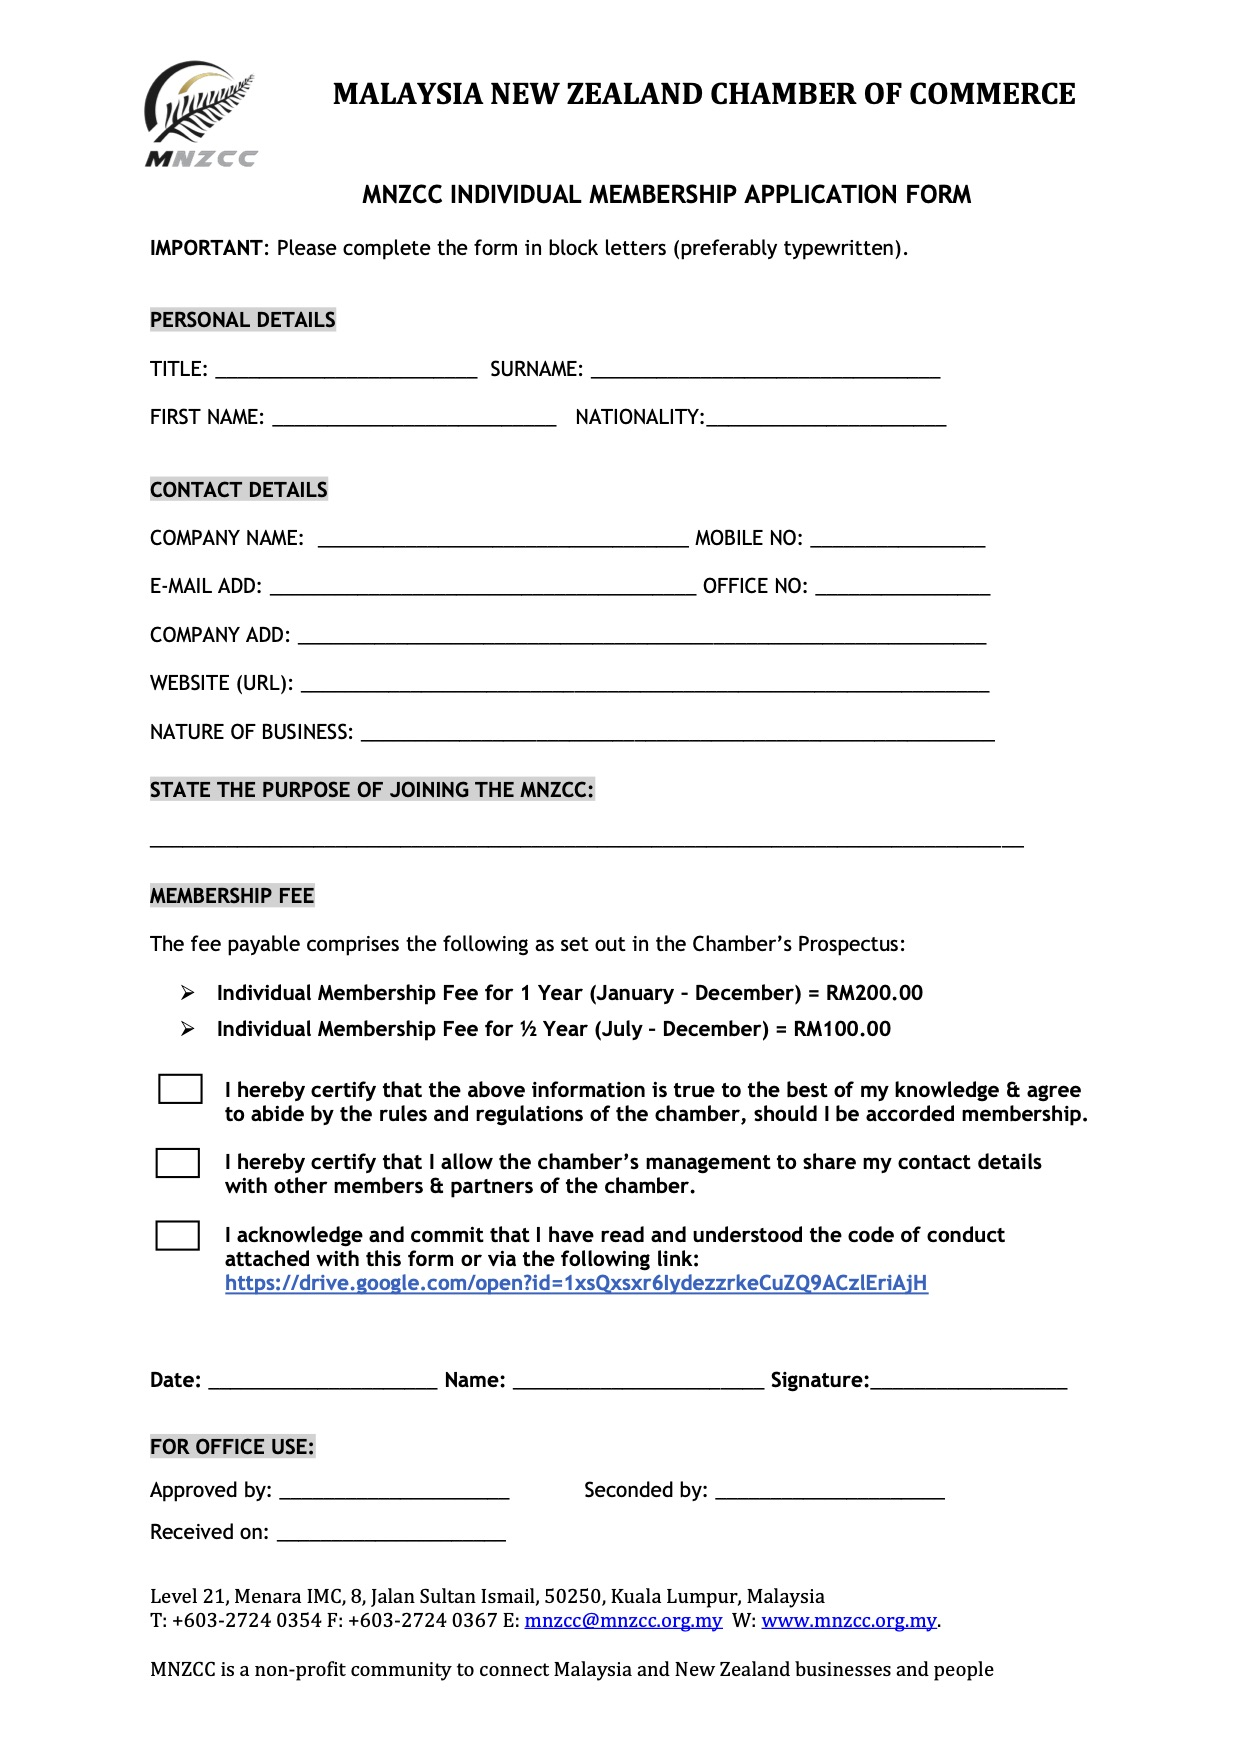 MNZCC INDIVIDUAL MEMBERSHIP APPLICATION FORM